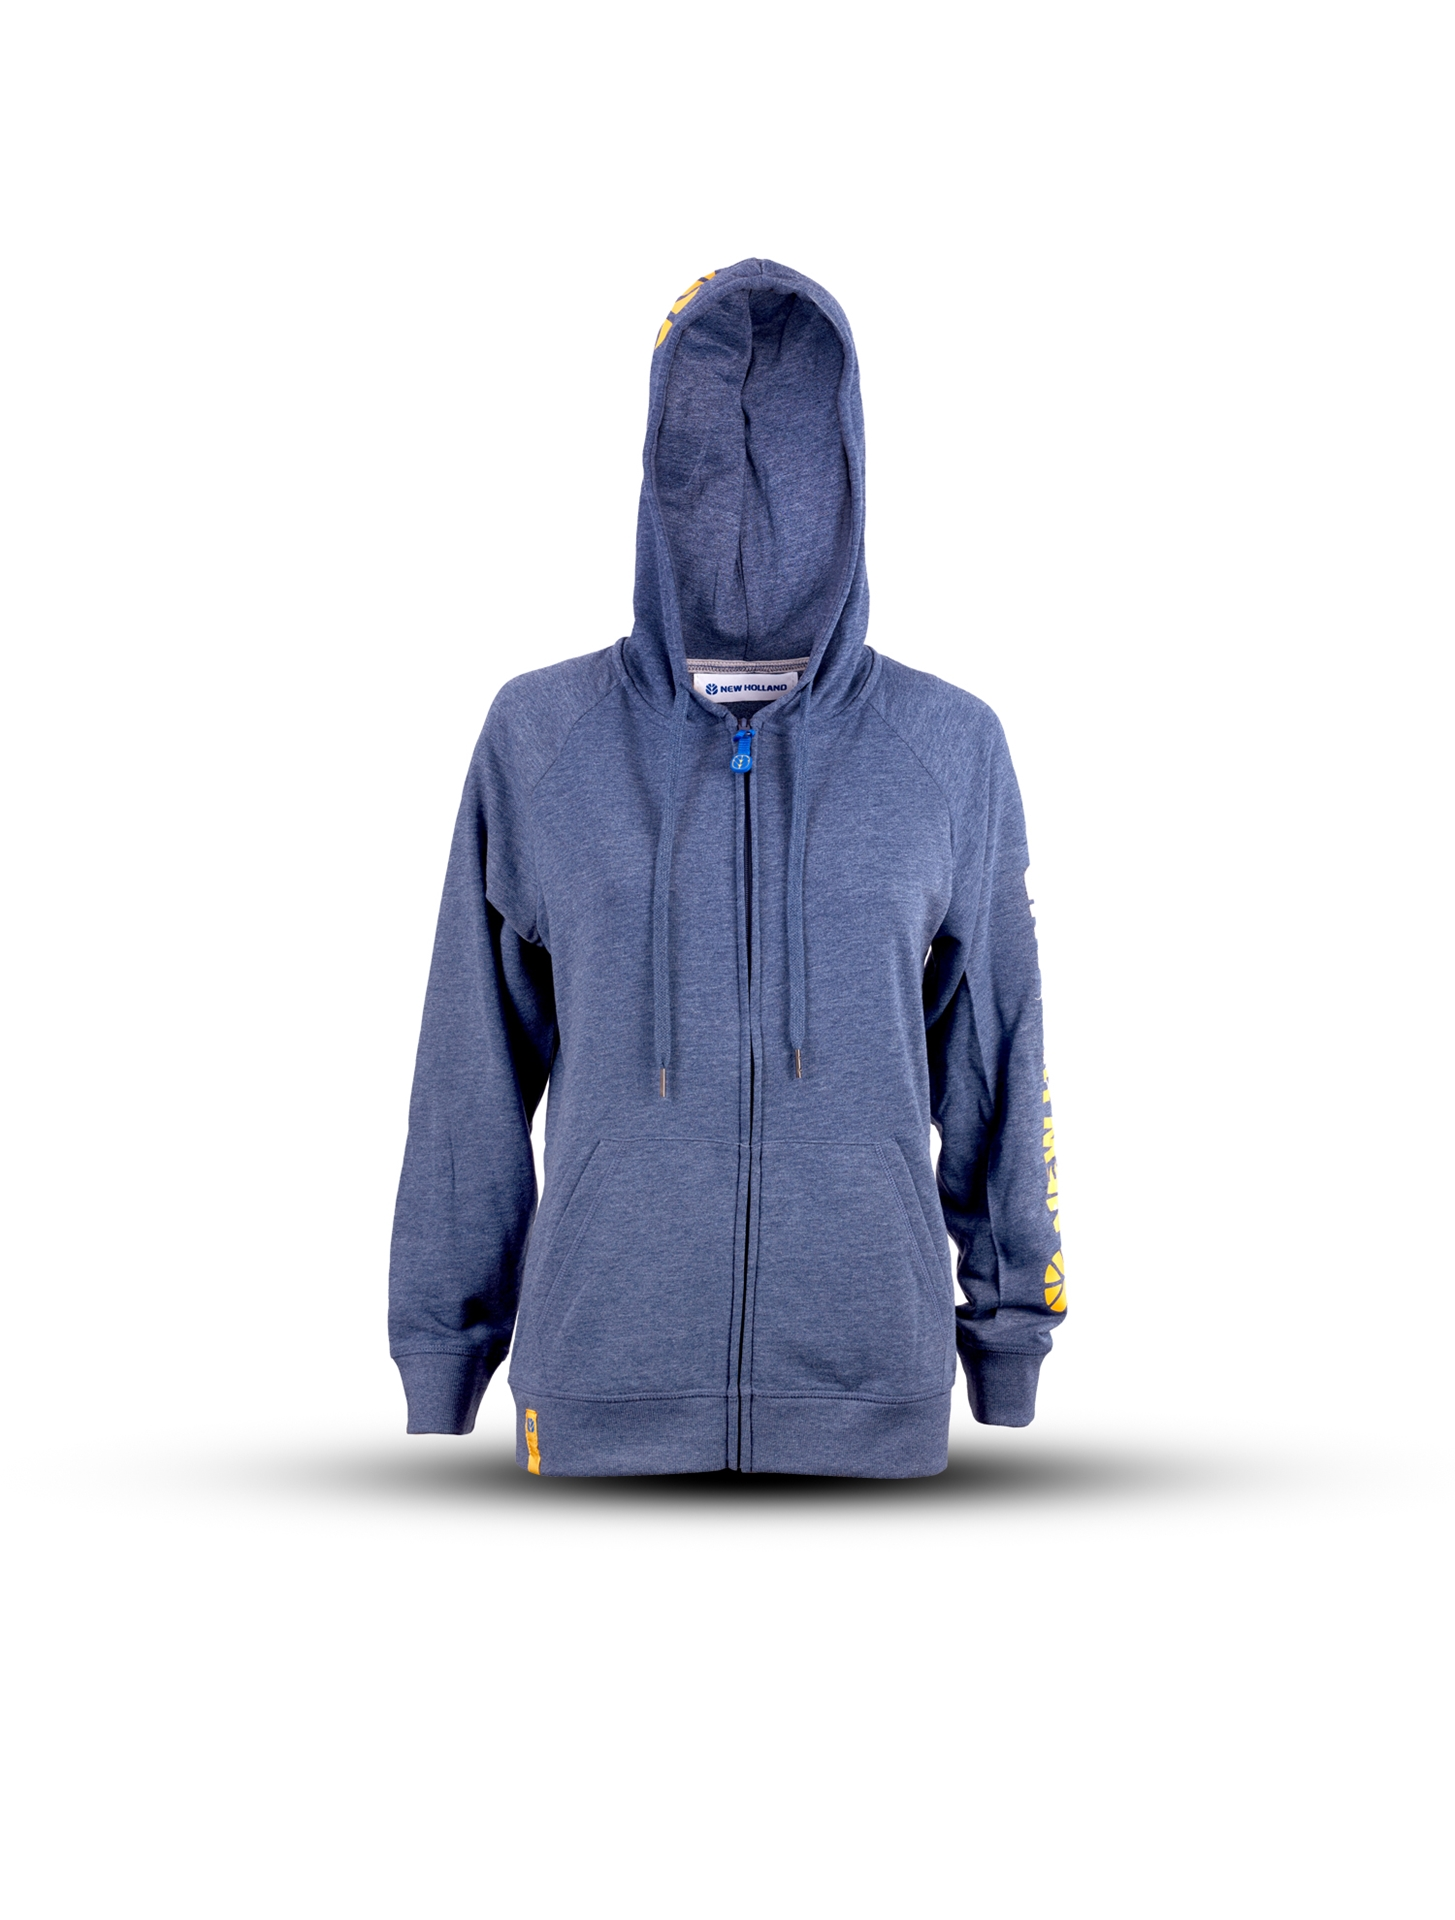 Woman's French terry hoodie